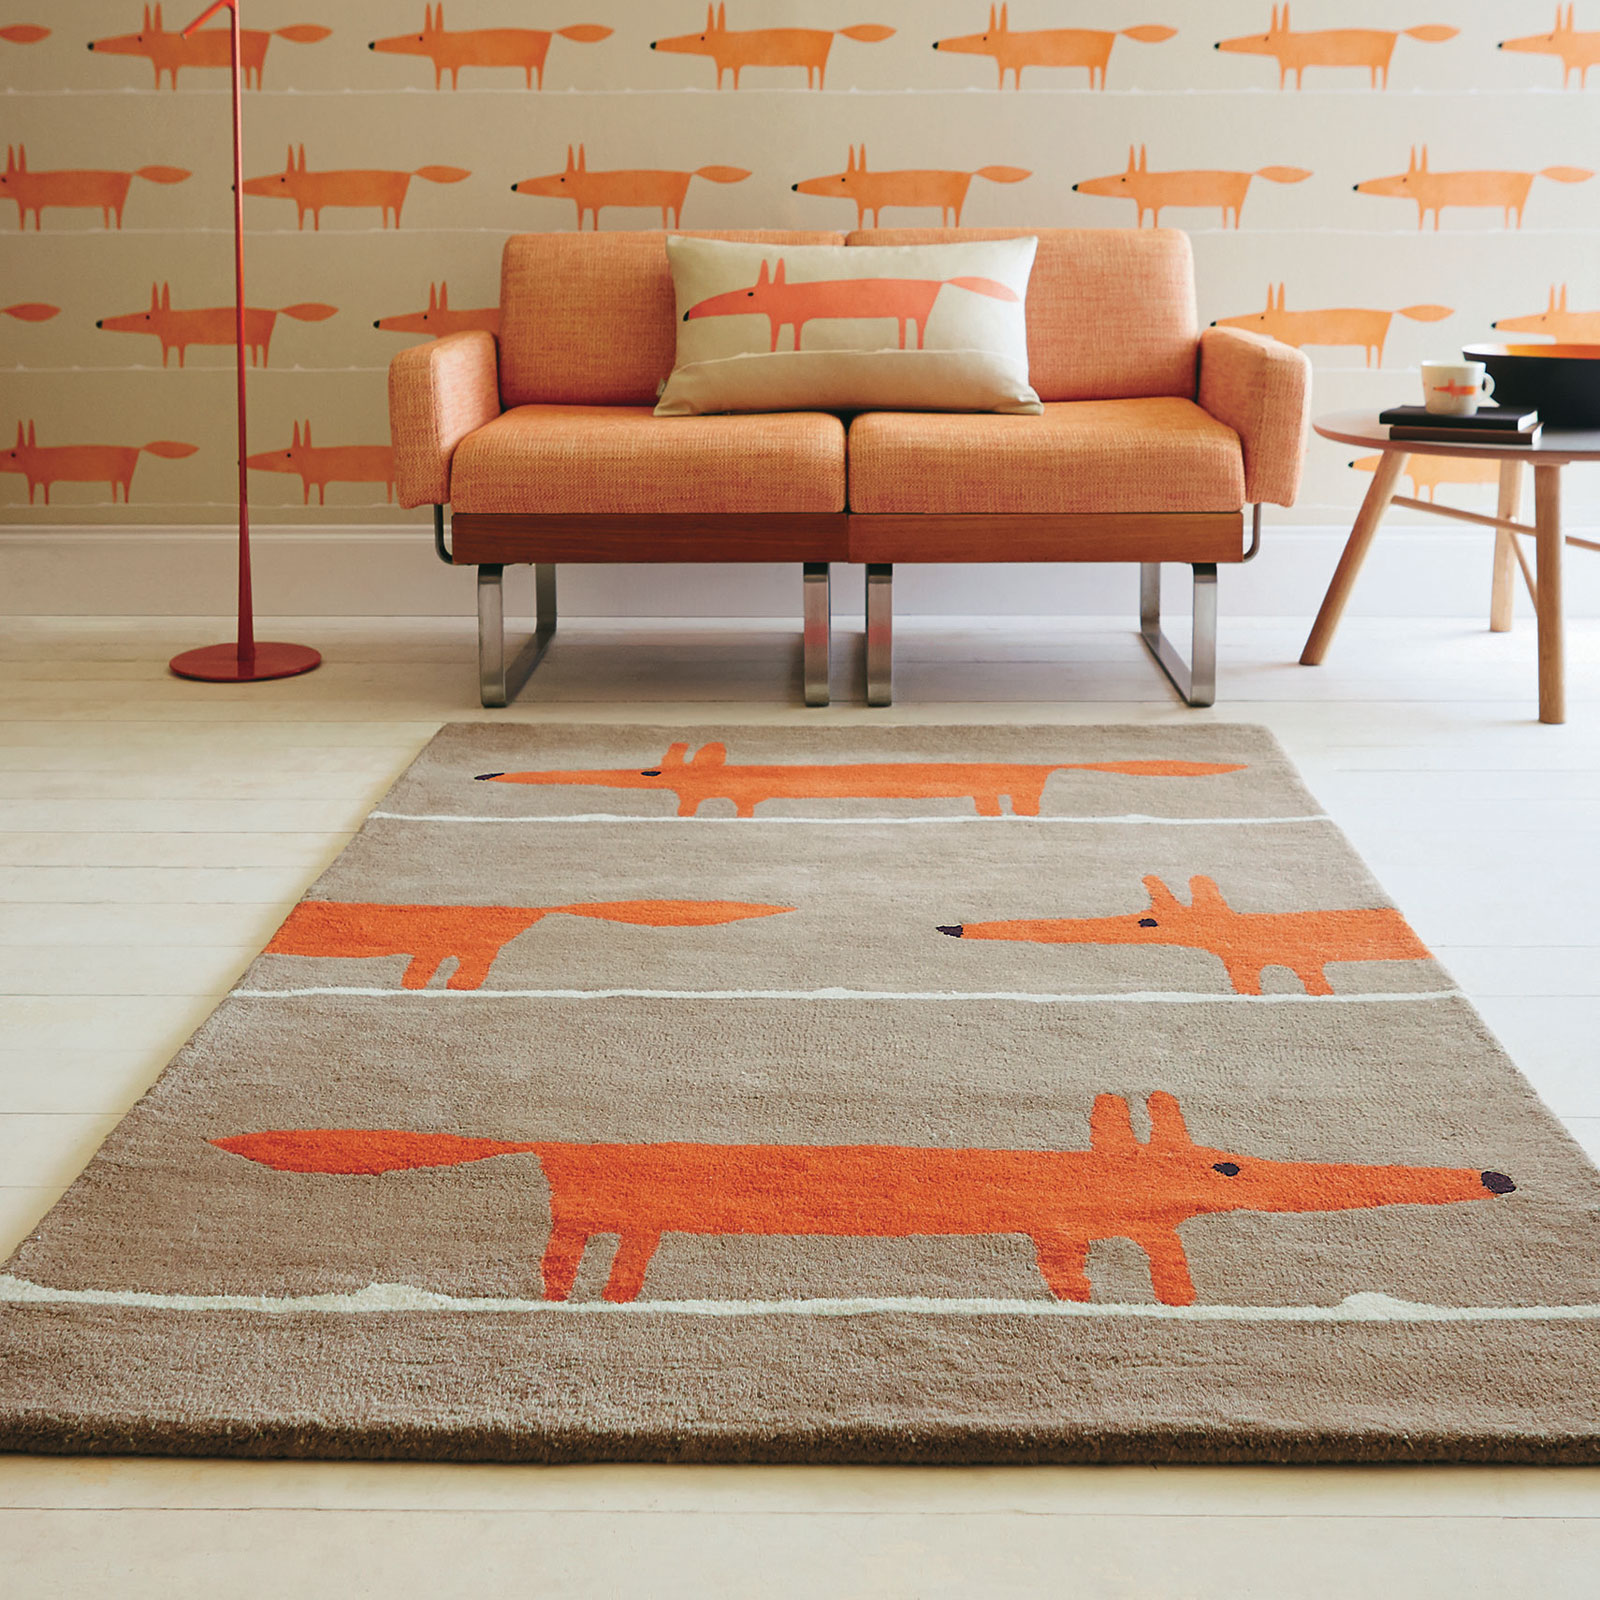 Scion Mr Fox Cinnamon 25303 Rug